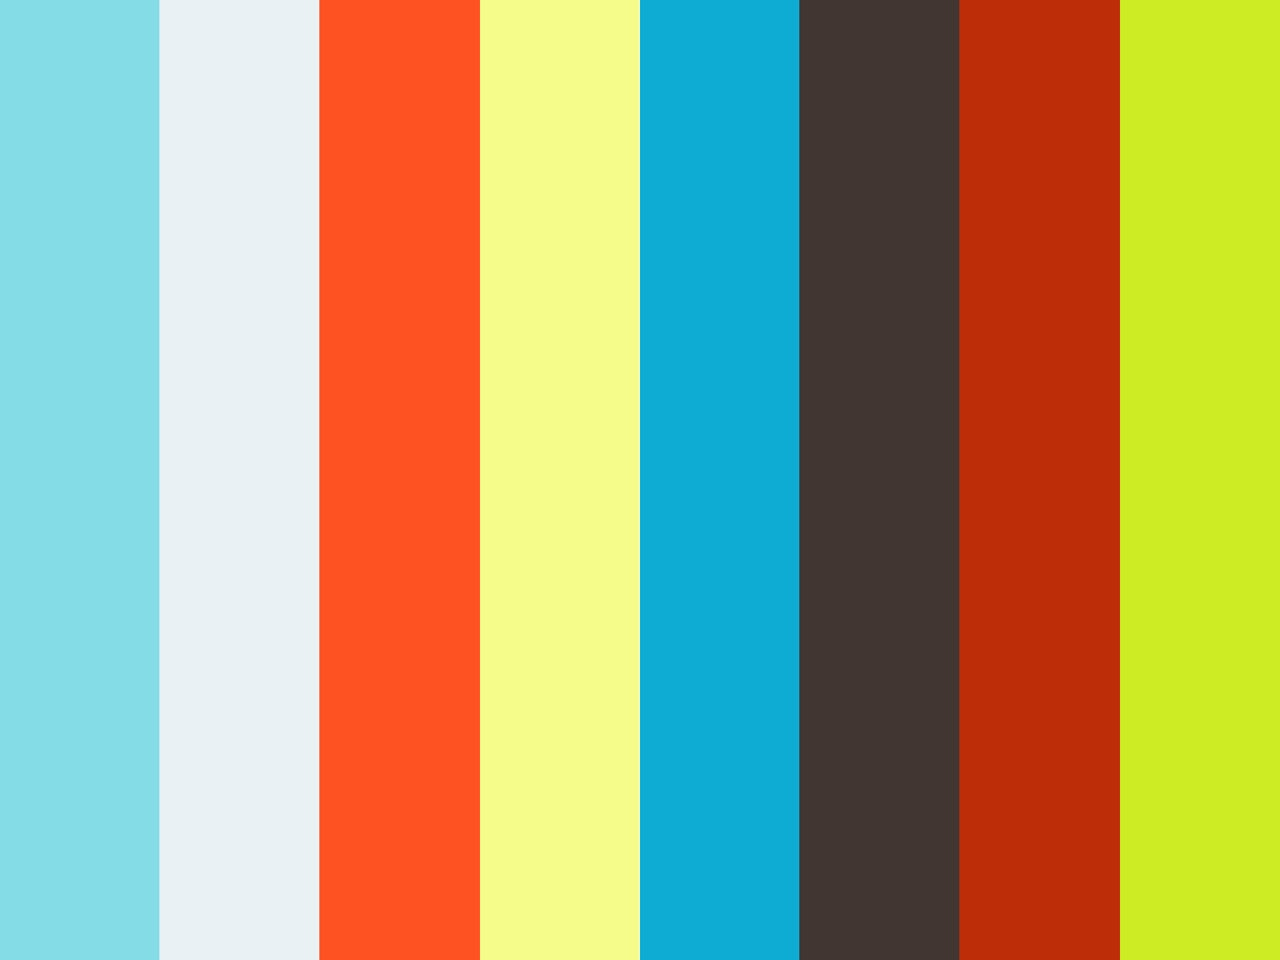 darryl hickman movies and tv showsdarryl hickman actor, darryl hickman imdb, darryl hickman images, darryl hickman bio, darryl hickman net worth, darryl hickman facebook, darryl hickman dobie gillis, darryl hickman photos, darryl hickman, darryl hickman movies and tv shows, darryl hickman on gene tierney, darryl hickman 2015, darryl hickman chevrolet, darryl hickman gay, darryl hickman navy, darryl hickman gunsmoke, darryl hickman address, darryl hickman grapes of wrath, darryl hickman the nanny, darryl hickman shirley temple